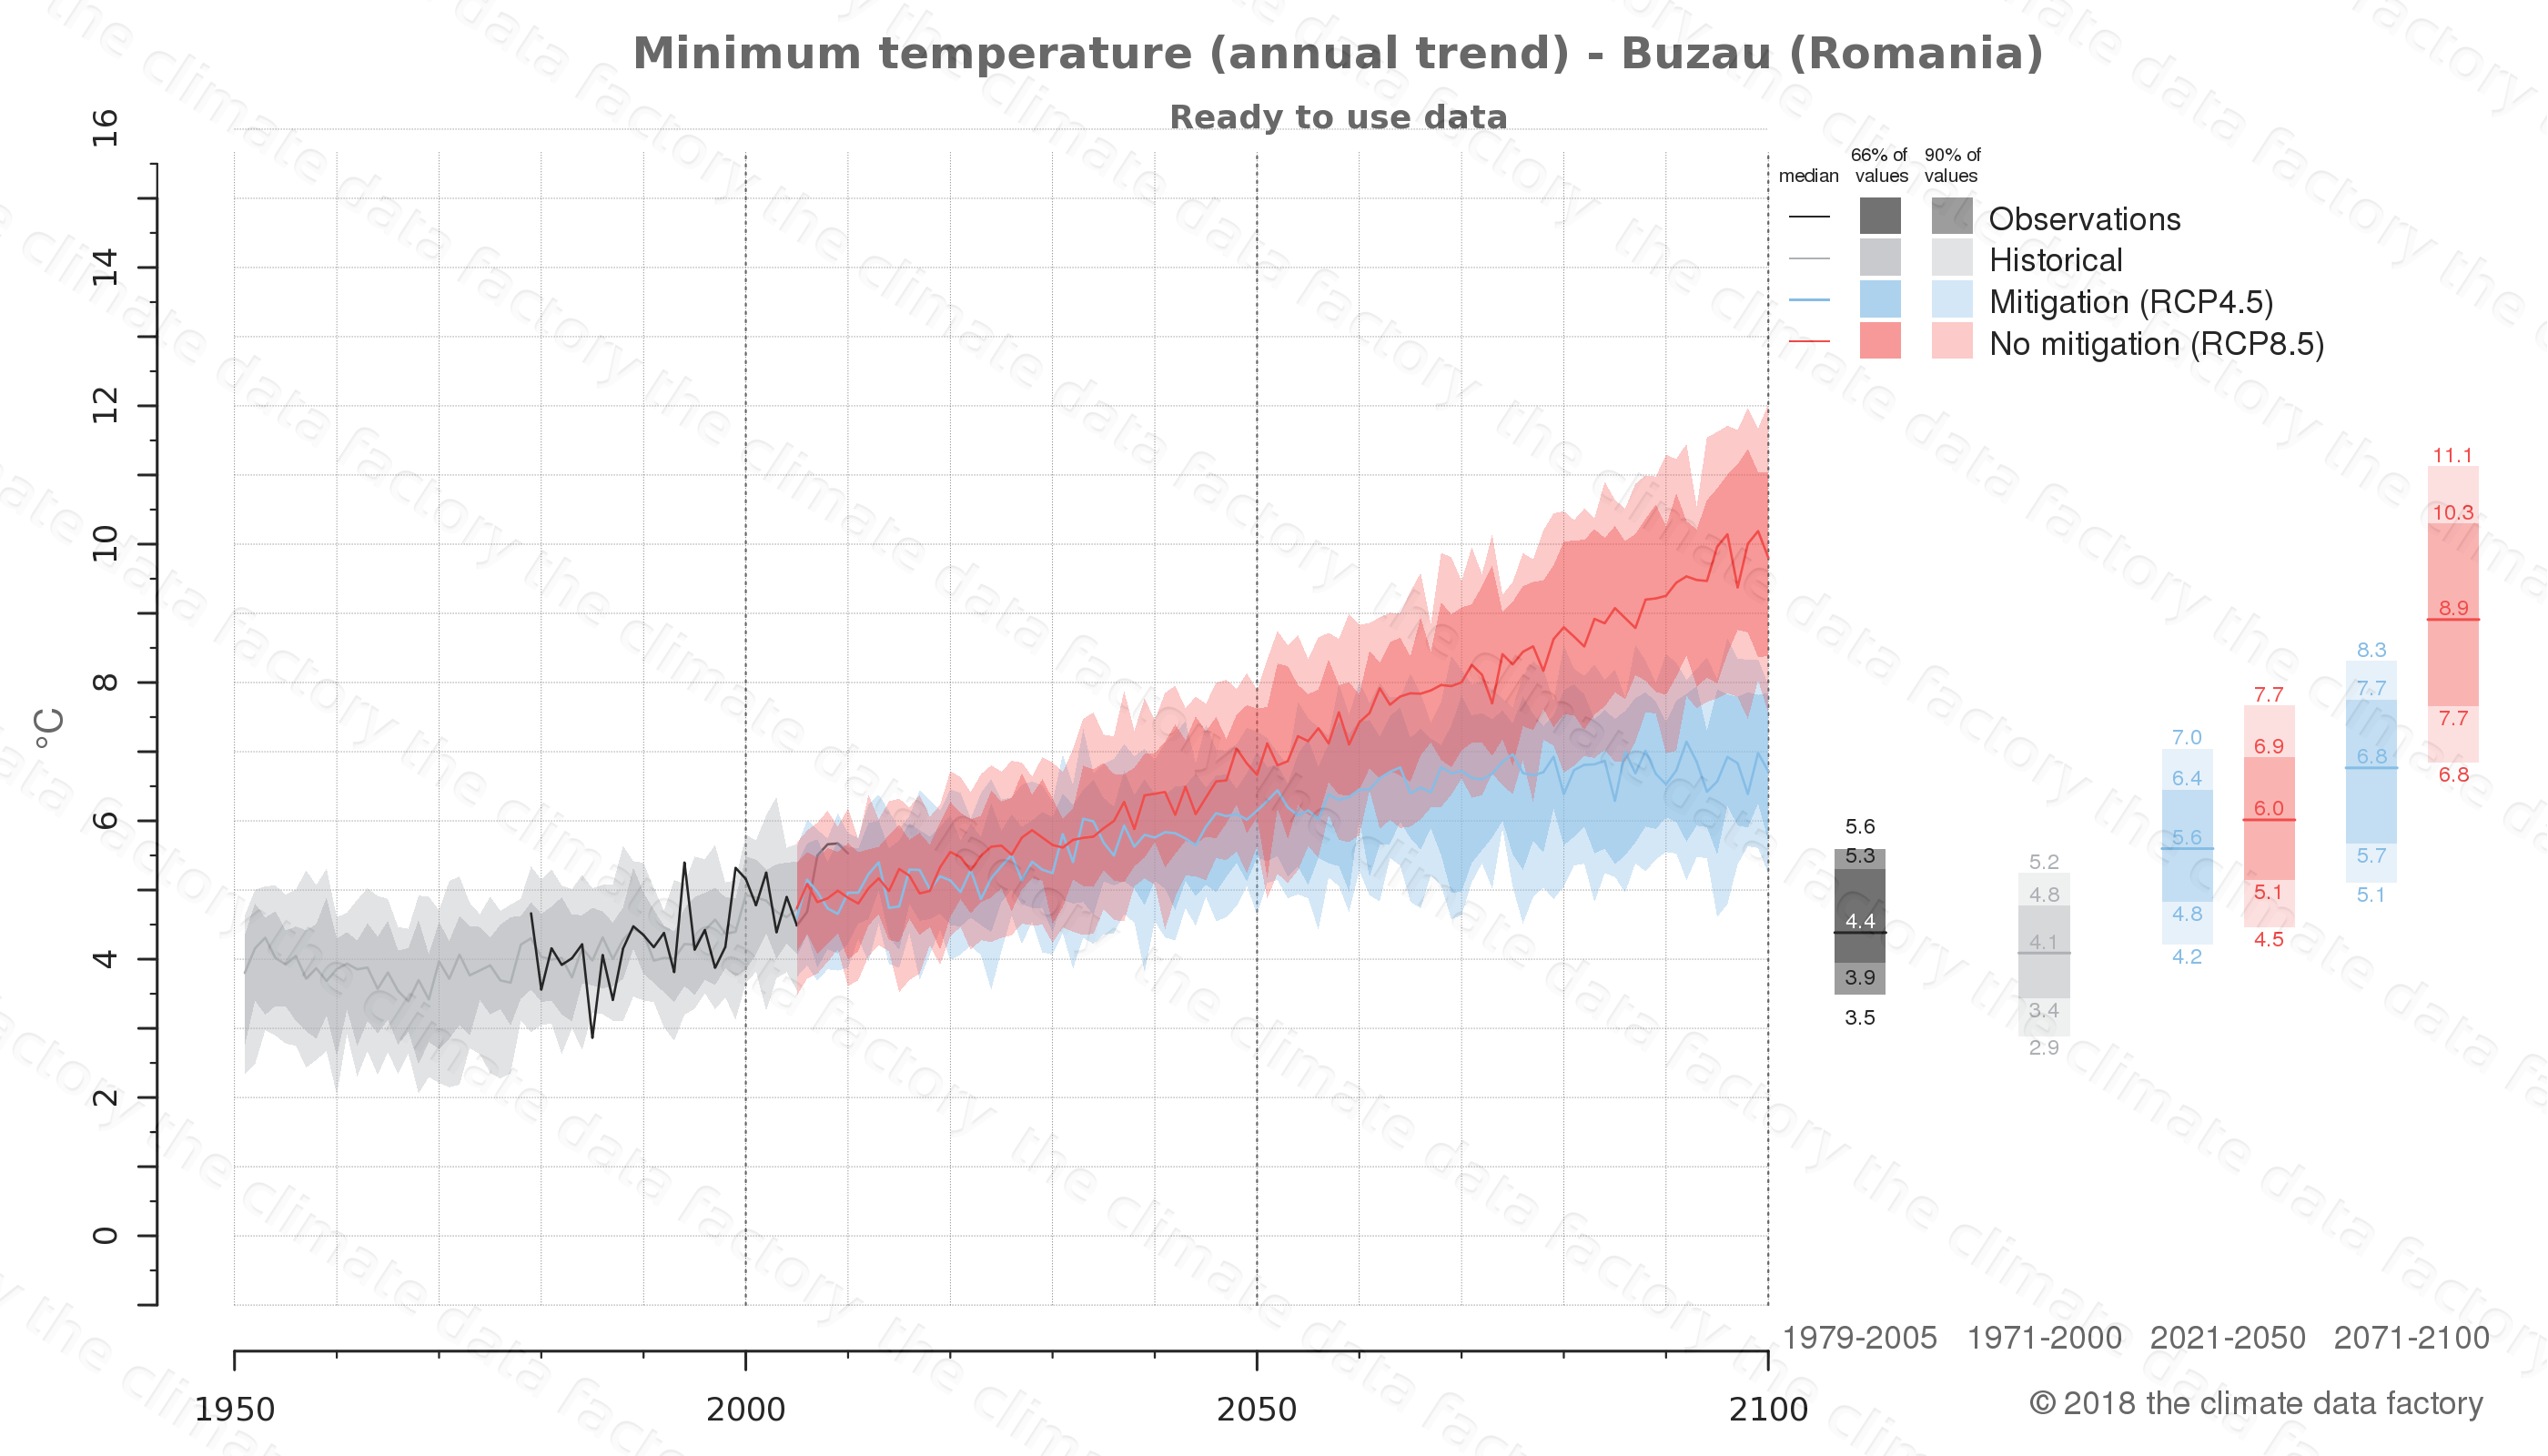 climate change data policy adaptation climate graph city data minimum-temperature buzau romania